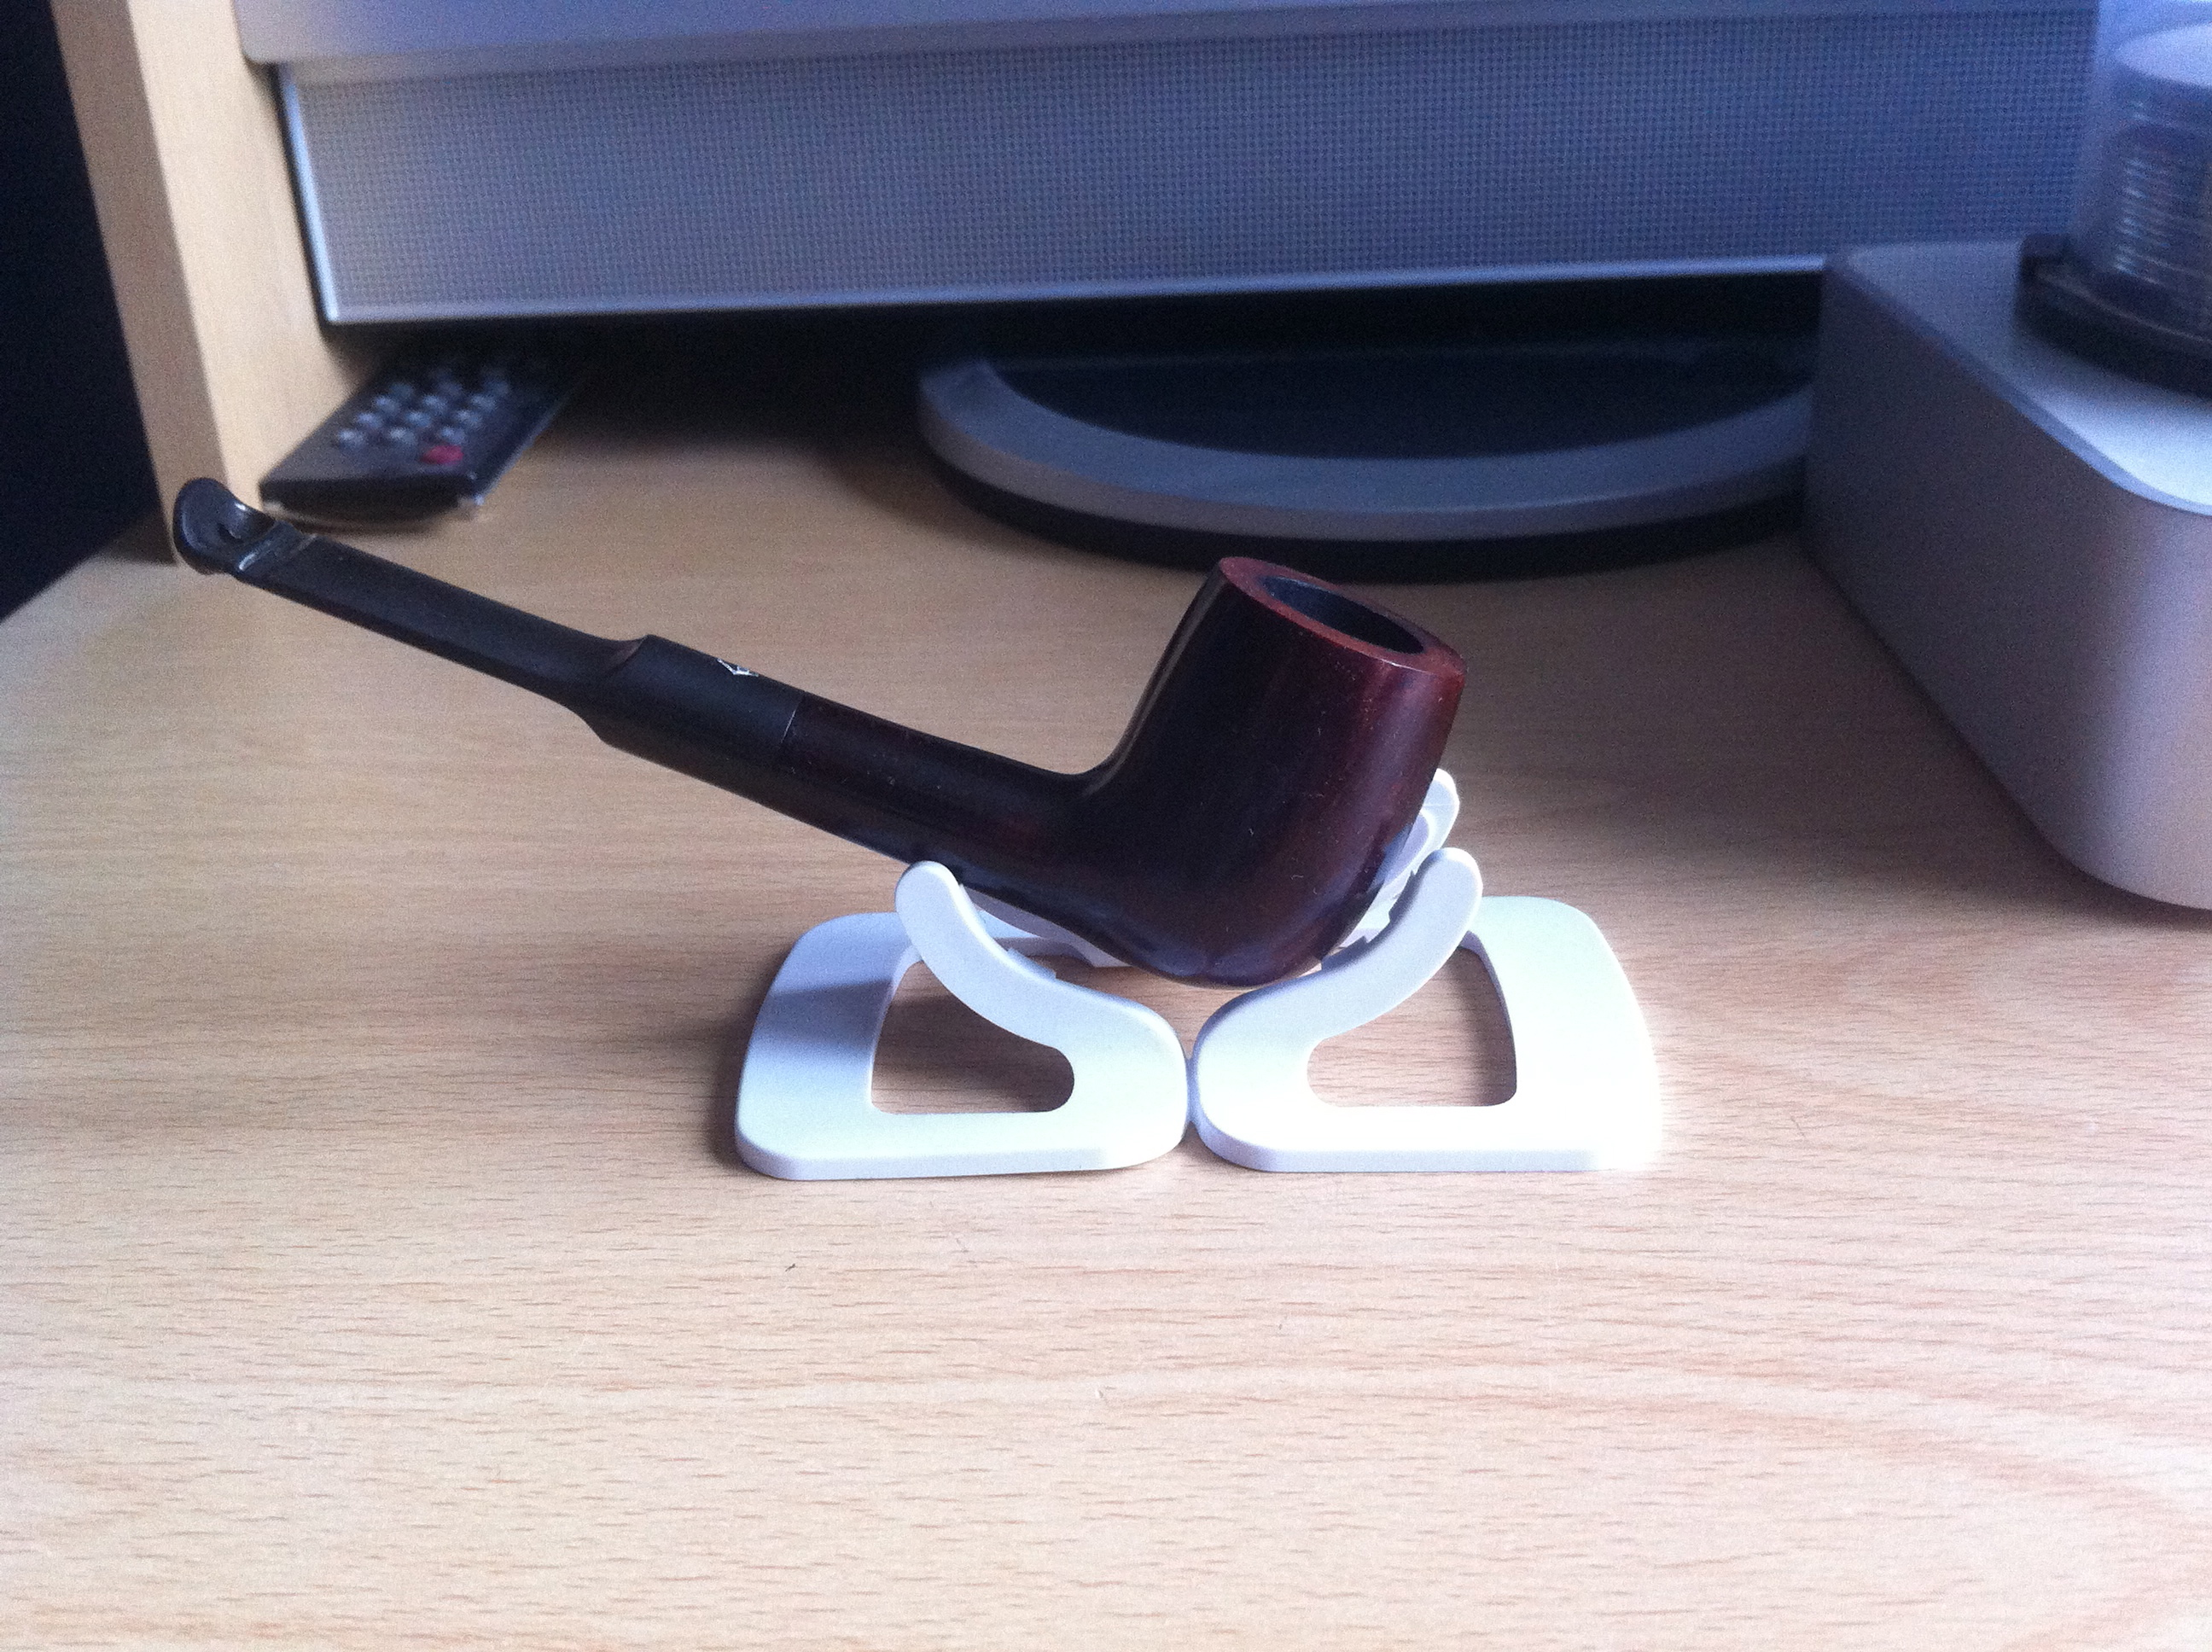 Picture of Tobacco Pipe Stand From Unused Wi-Fi Router Stand